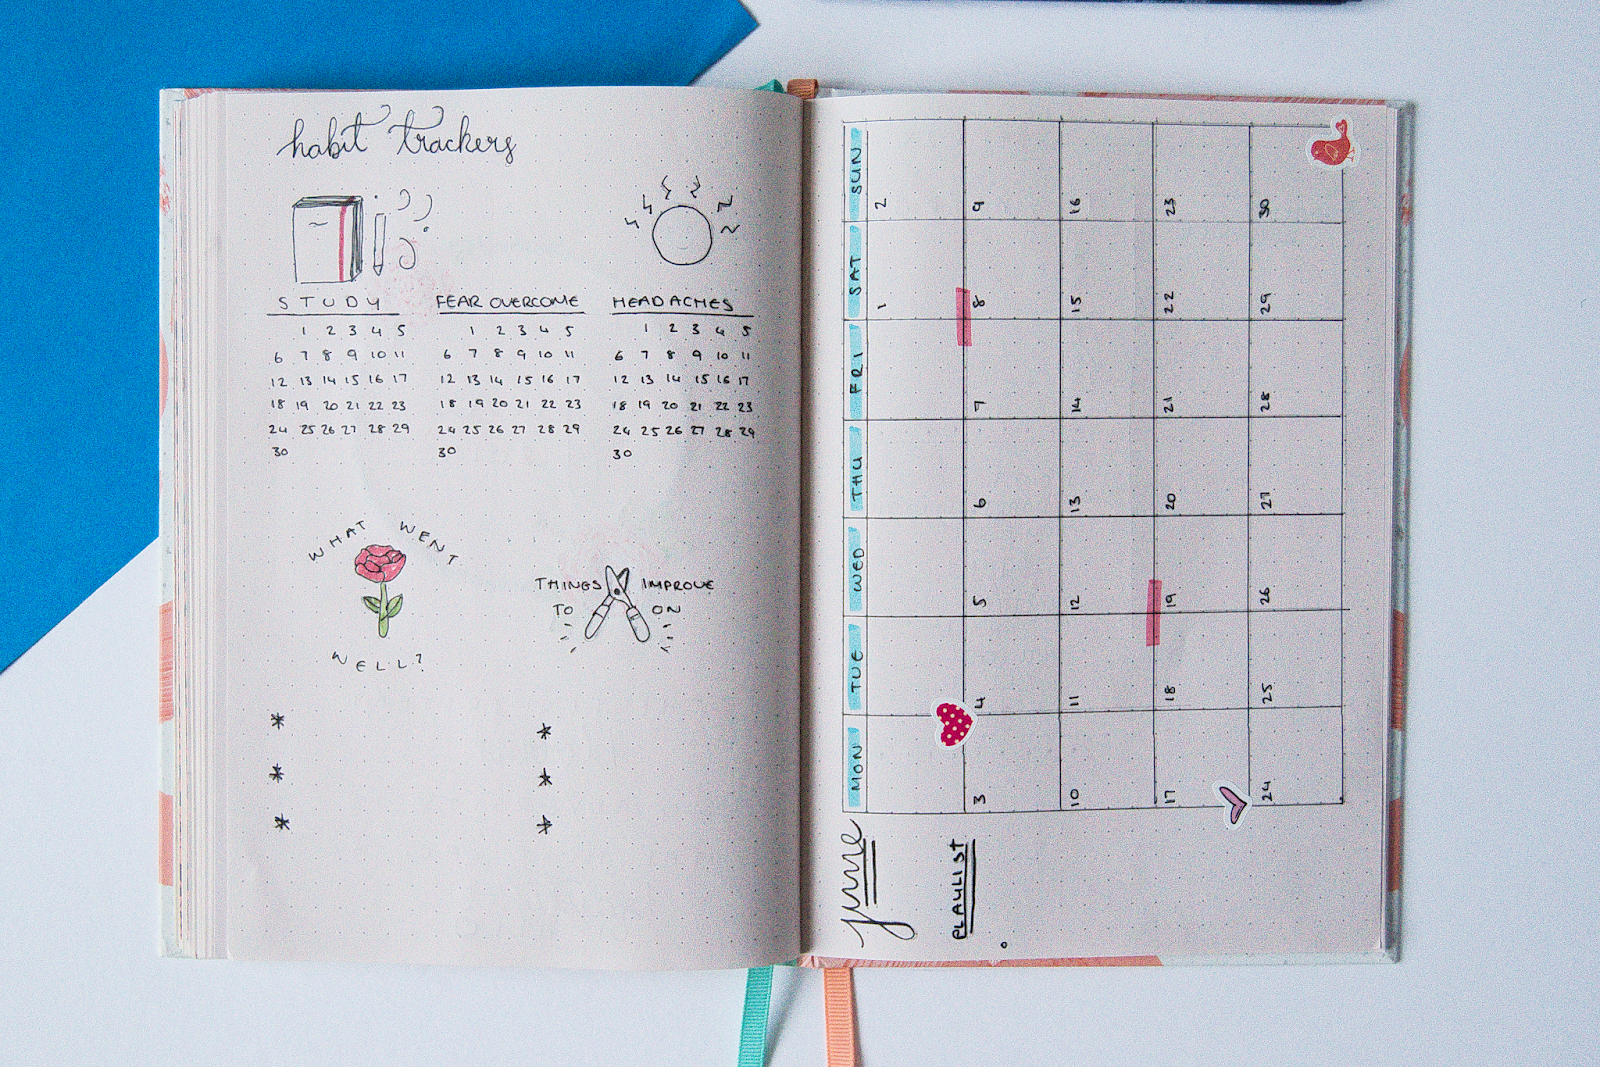 In the top third of the A5 page of the bullet journal are three habit trackers; a study one, a fear overcoming one, and a headache one. Underneath those are an area for what went well and things to improve on.